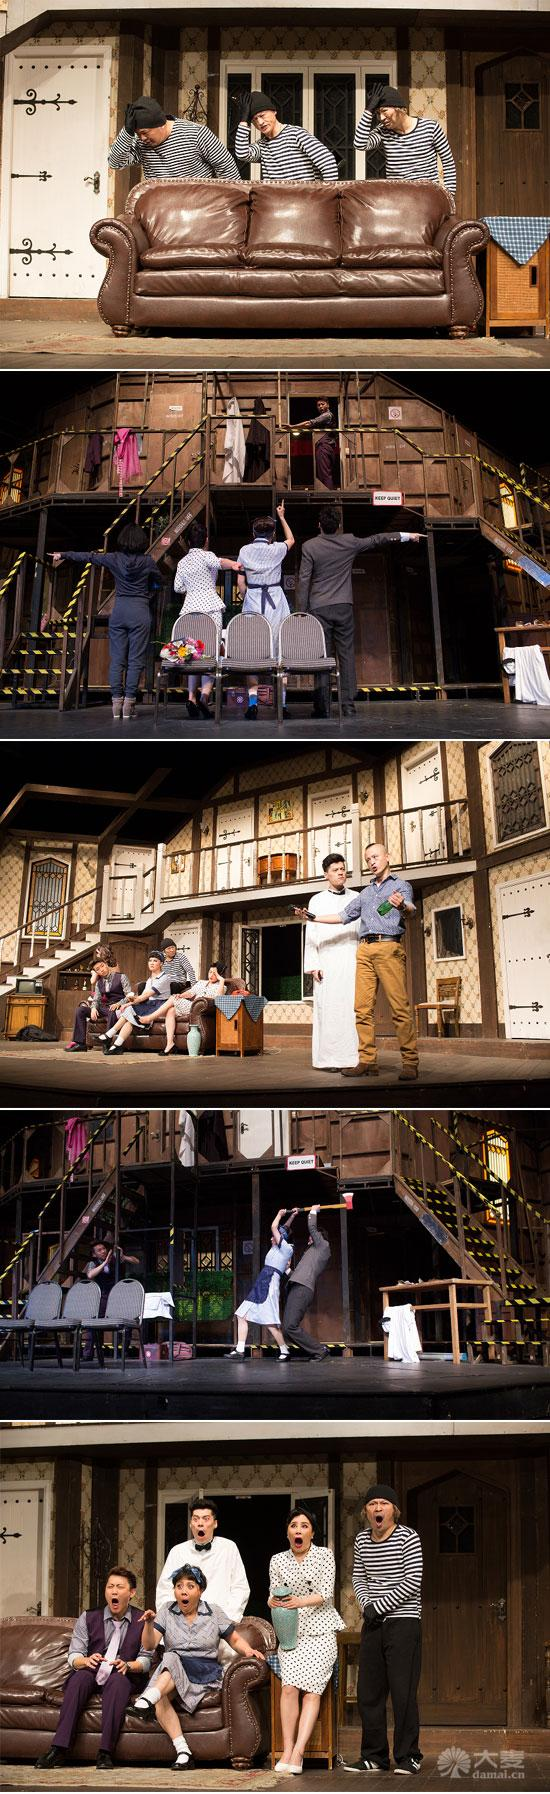 Noises Off - Shanghai Dramatic Arts Centre